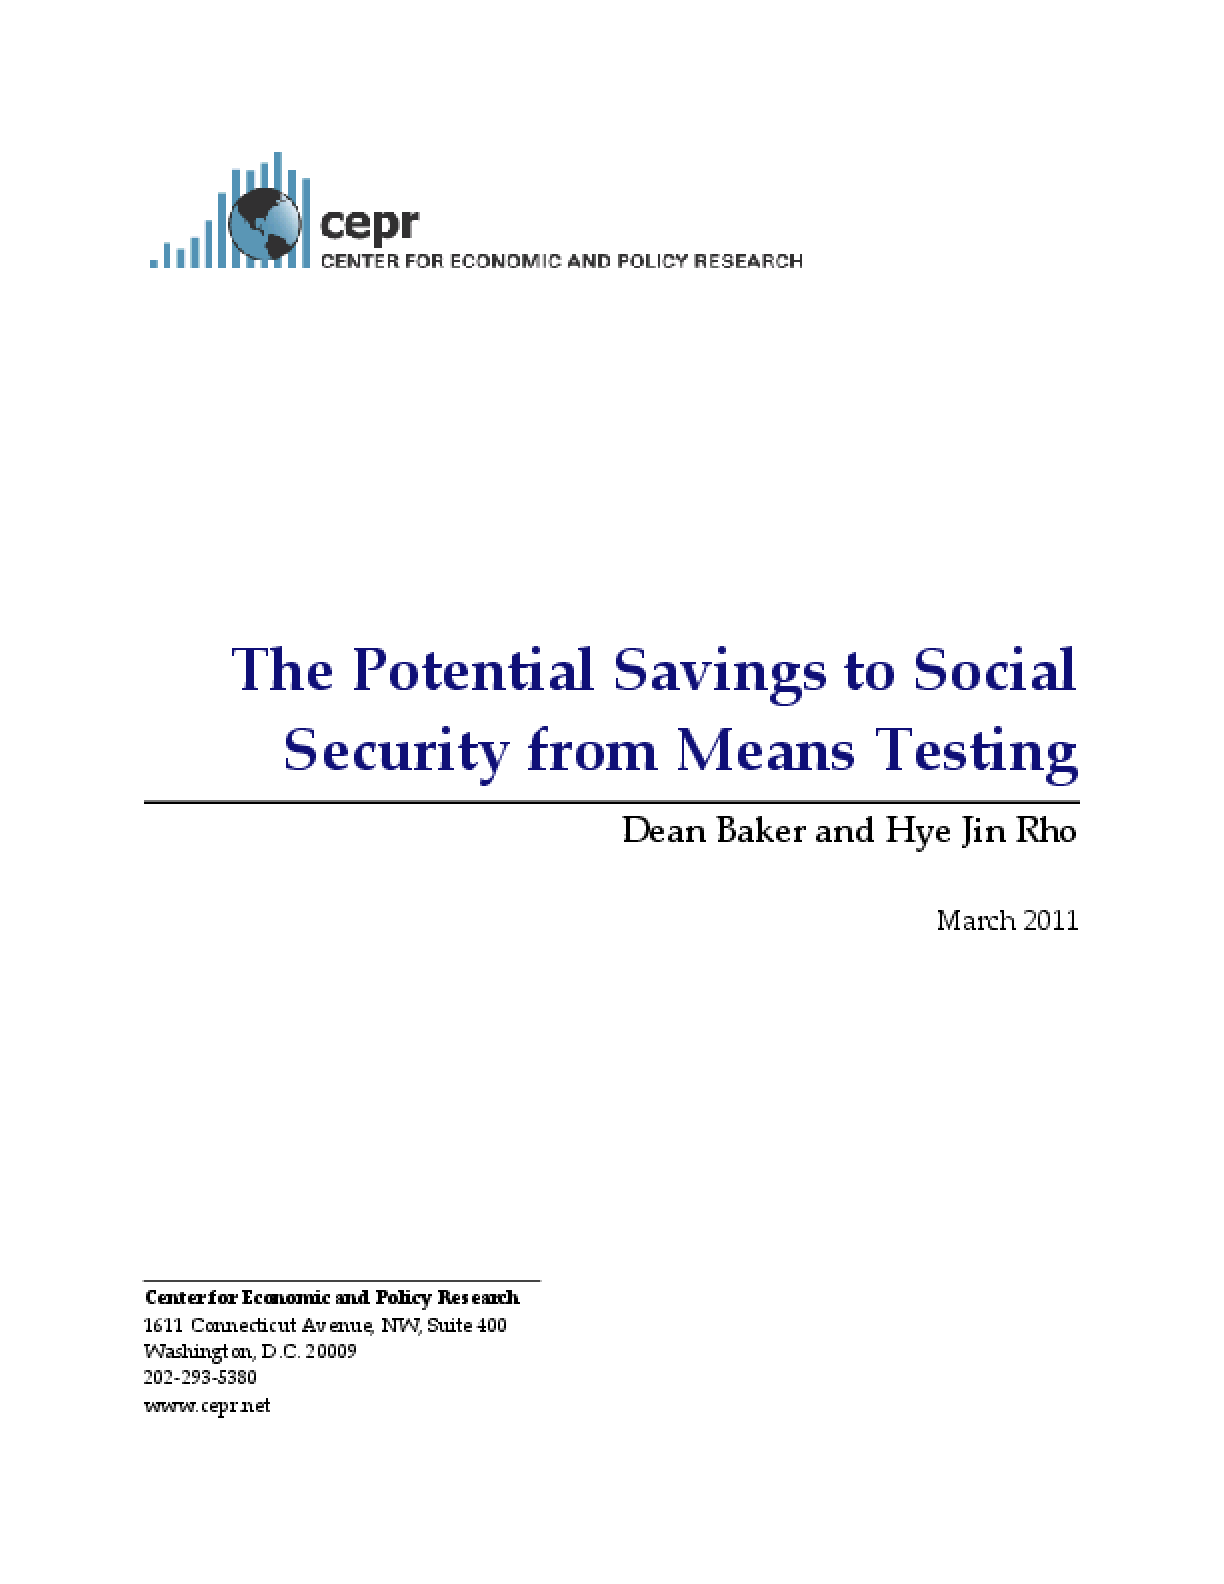 The Potential Savings to Social Security from Means Testing